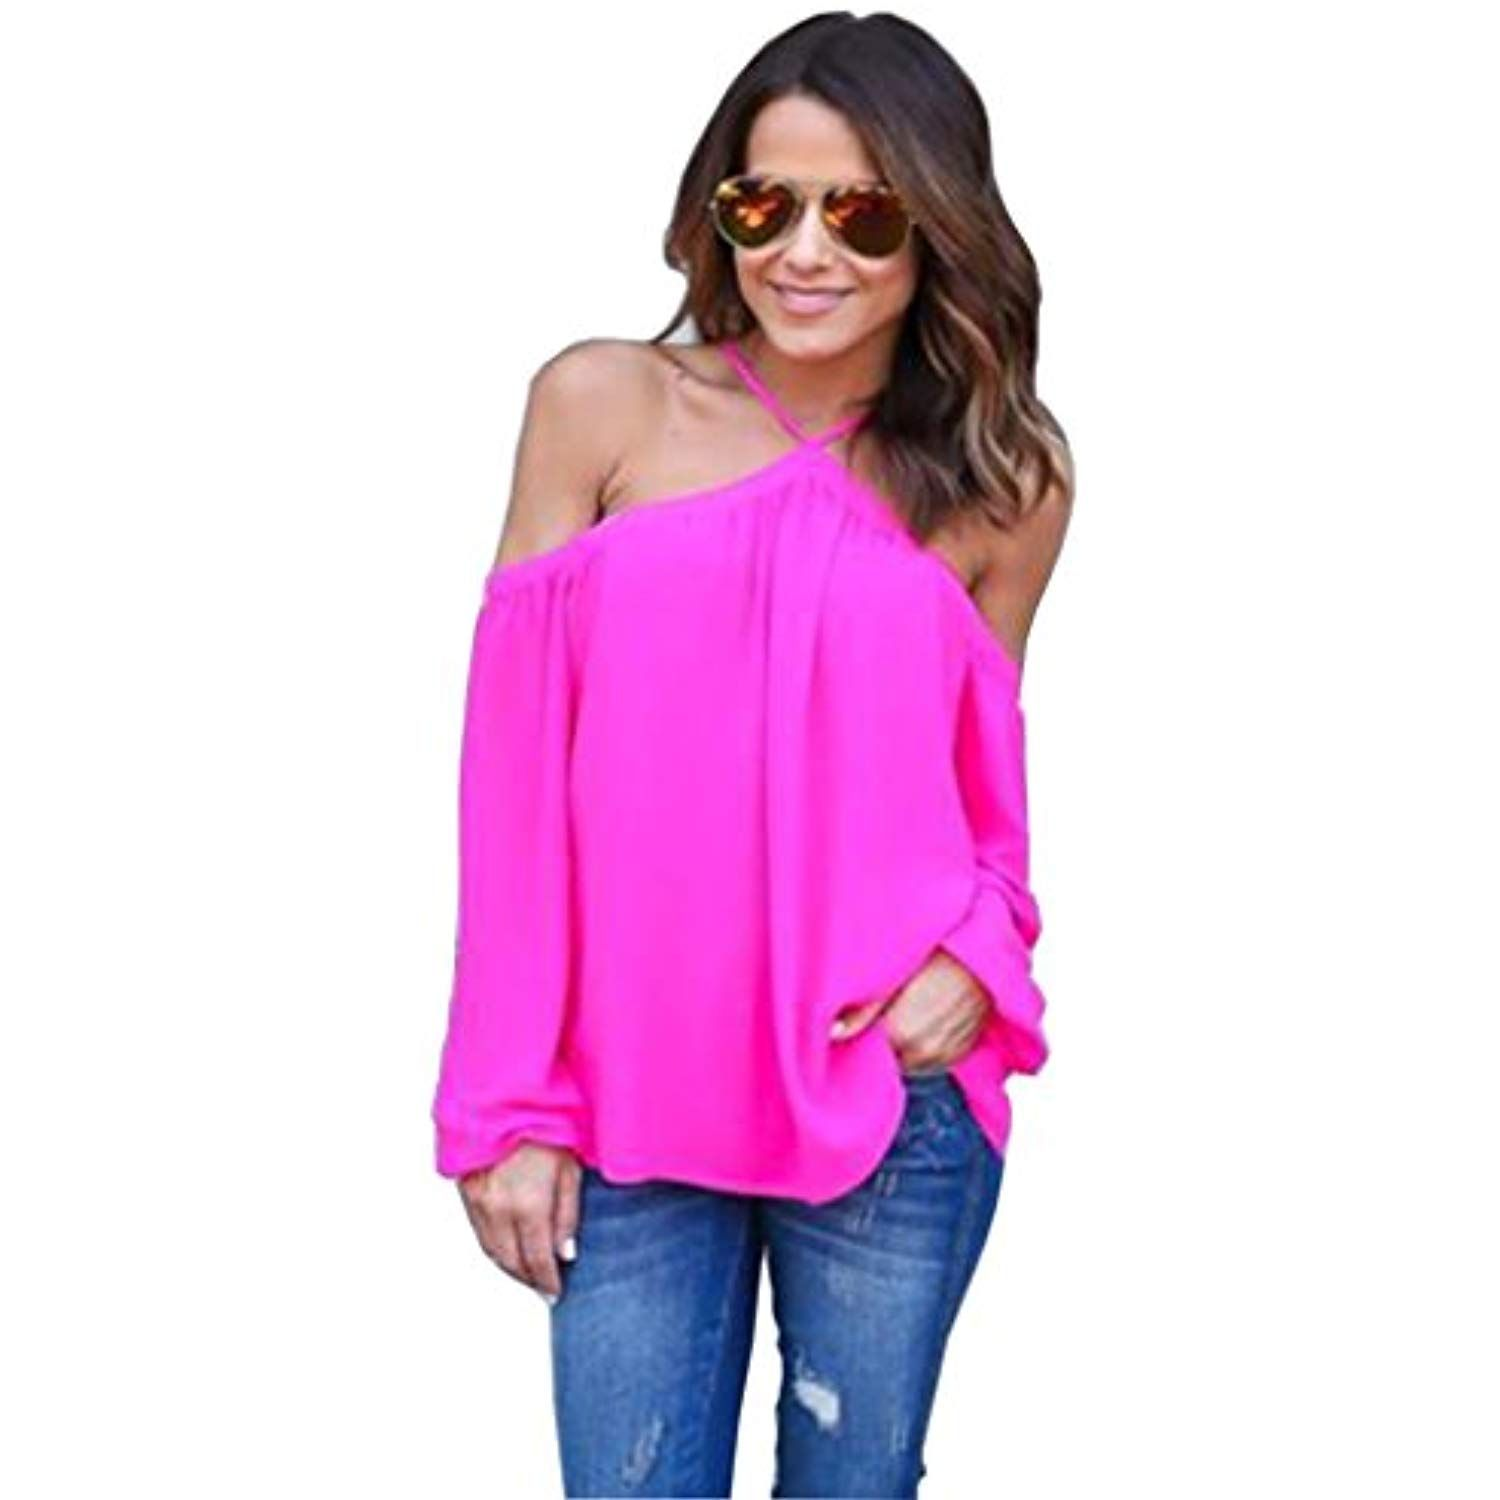 2d4f497f69ca56 Women's Sexy Spaghetti Strap Off Shoulder Shirt Tops Blouses >>> Read more  reviews of the product by visiting the link on the image. (This is an  affiliate ...